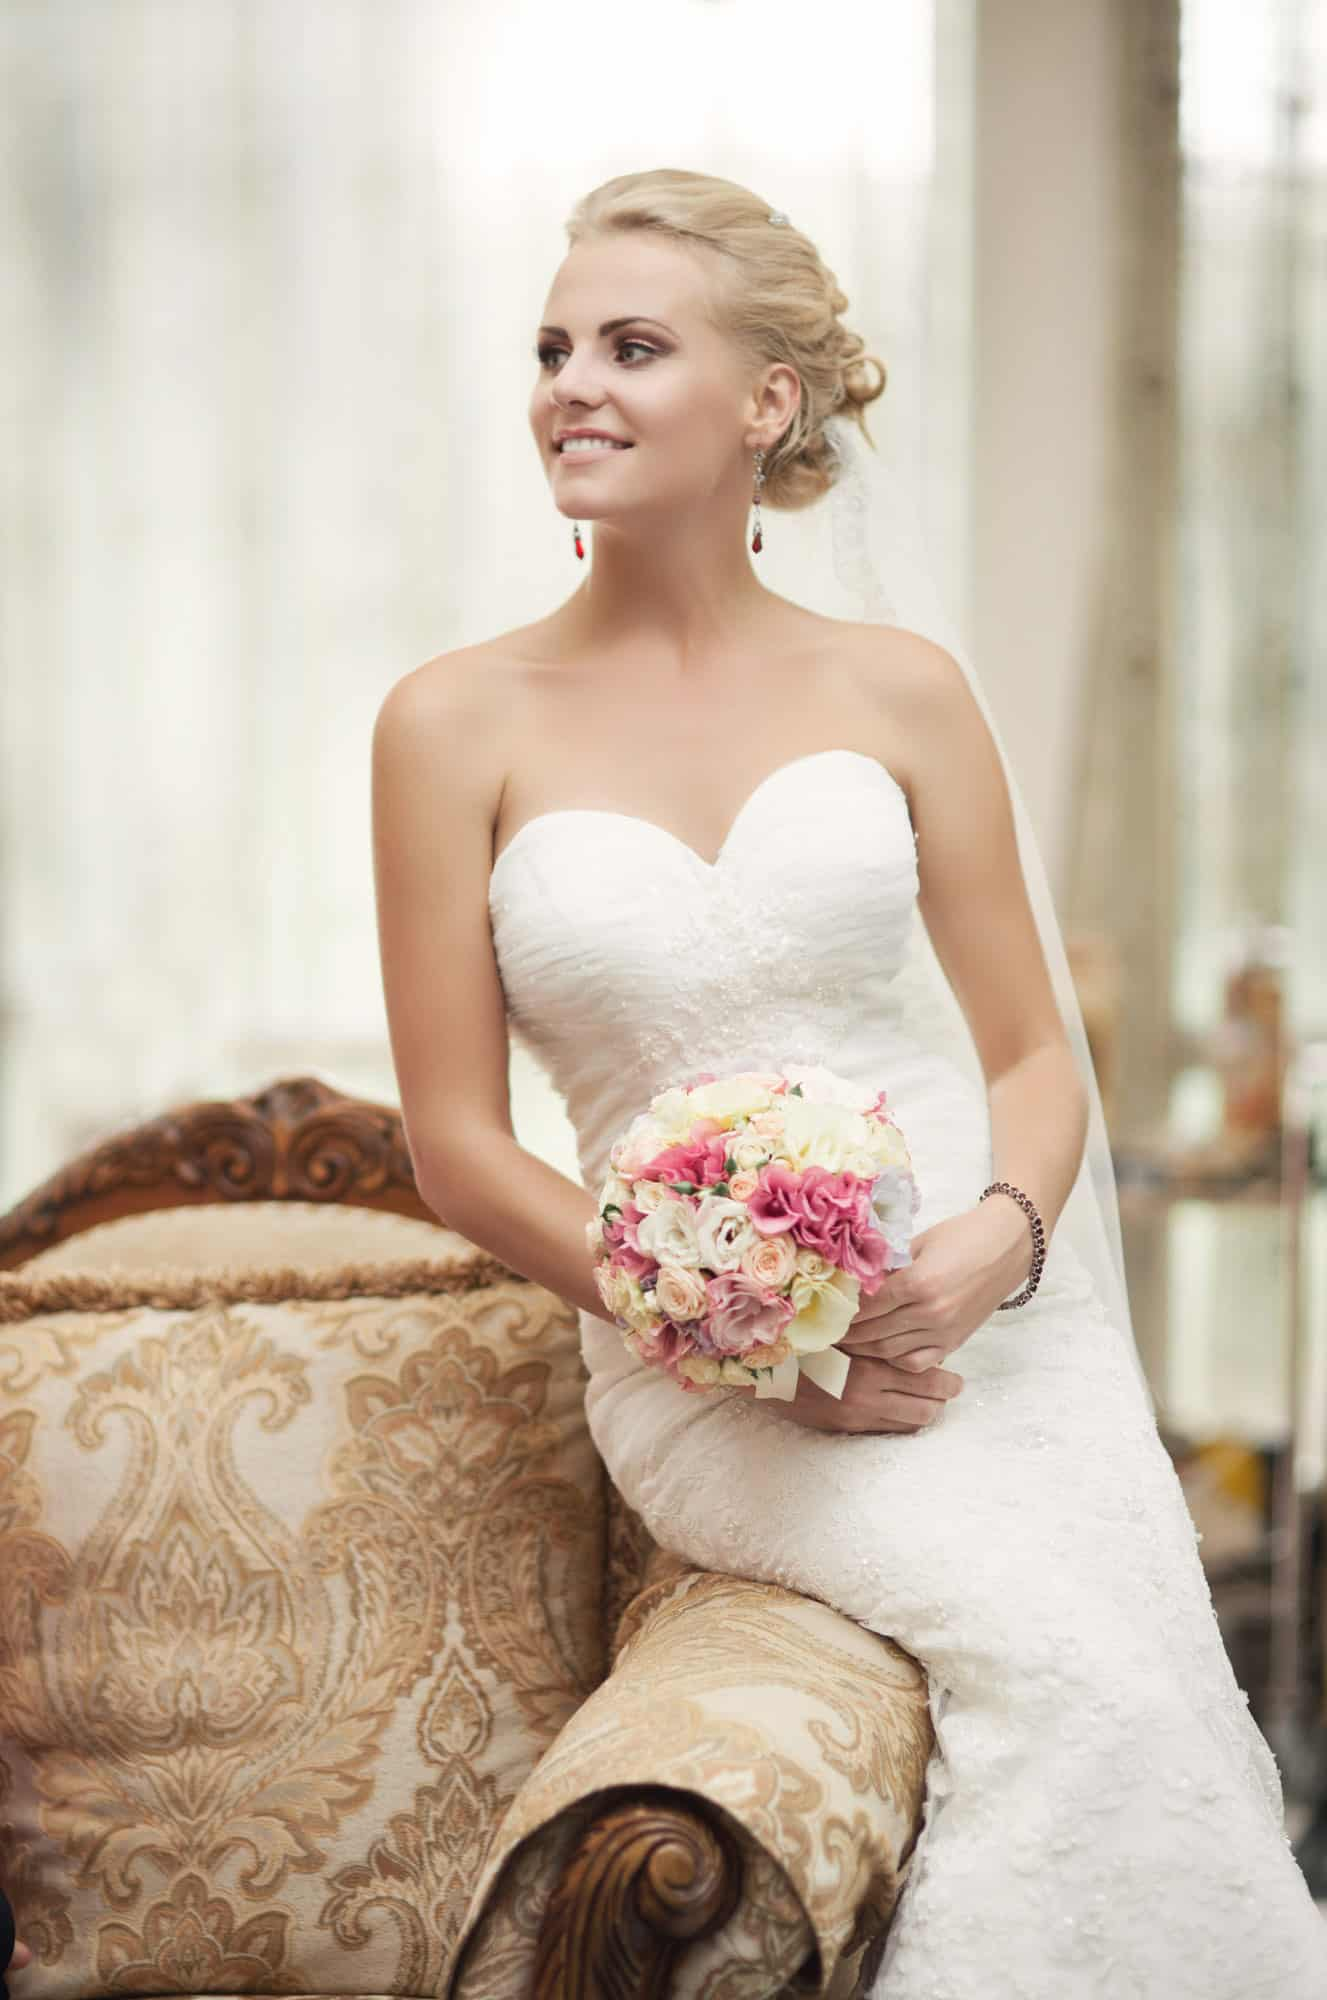 Bridal Boutique Darlington Beautiful Day Bridal,Dresses To Wear To A Wedding Reception